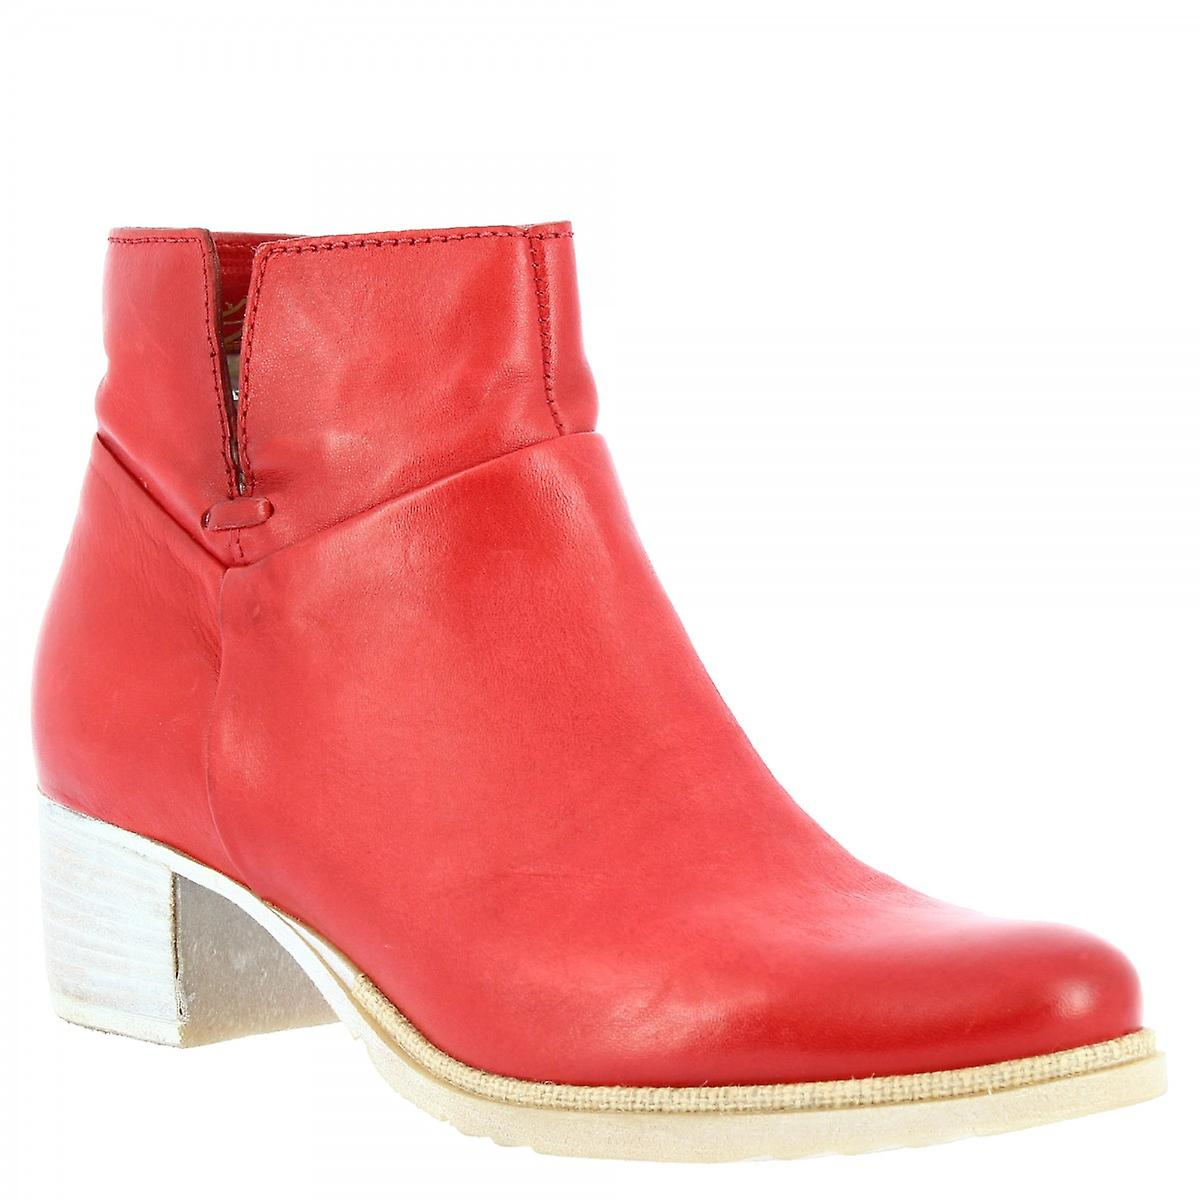 Leonardo Shoes Women's handmade low heel ankle boots red calf leather side zip N3G3Q